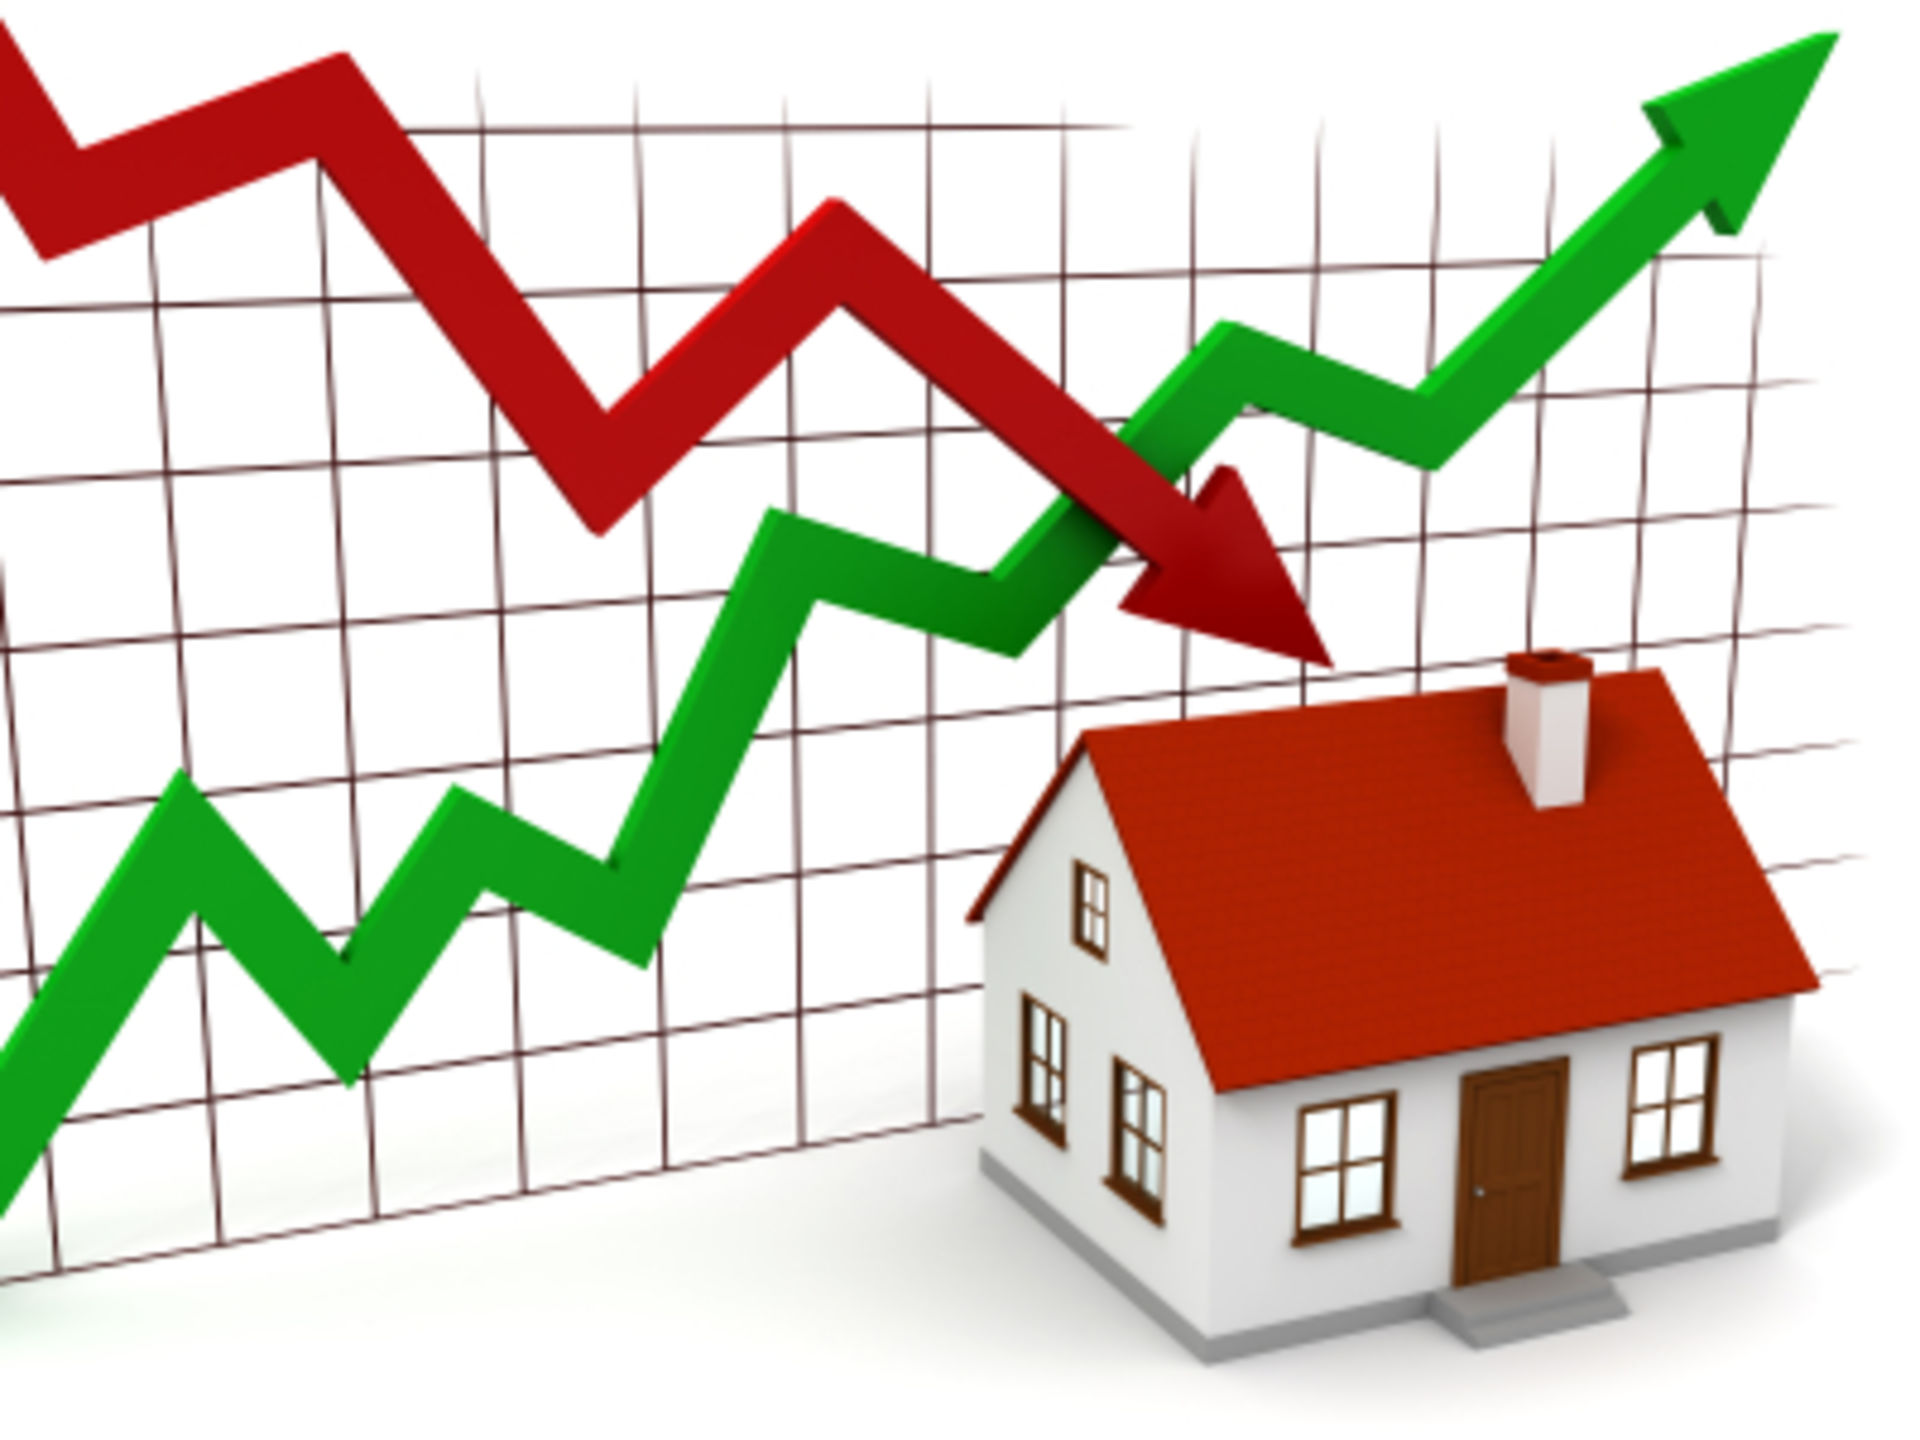 Housing Market Inventory by Jared Associates